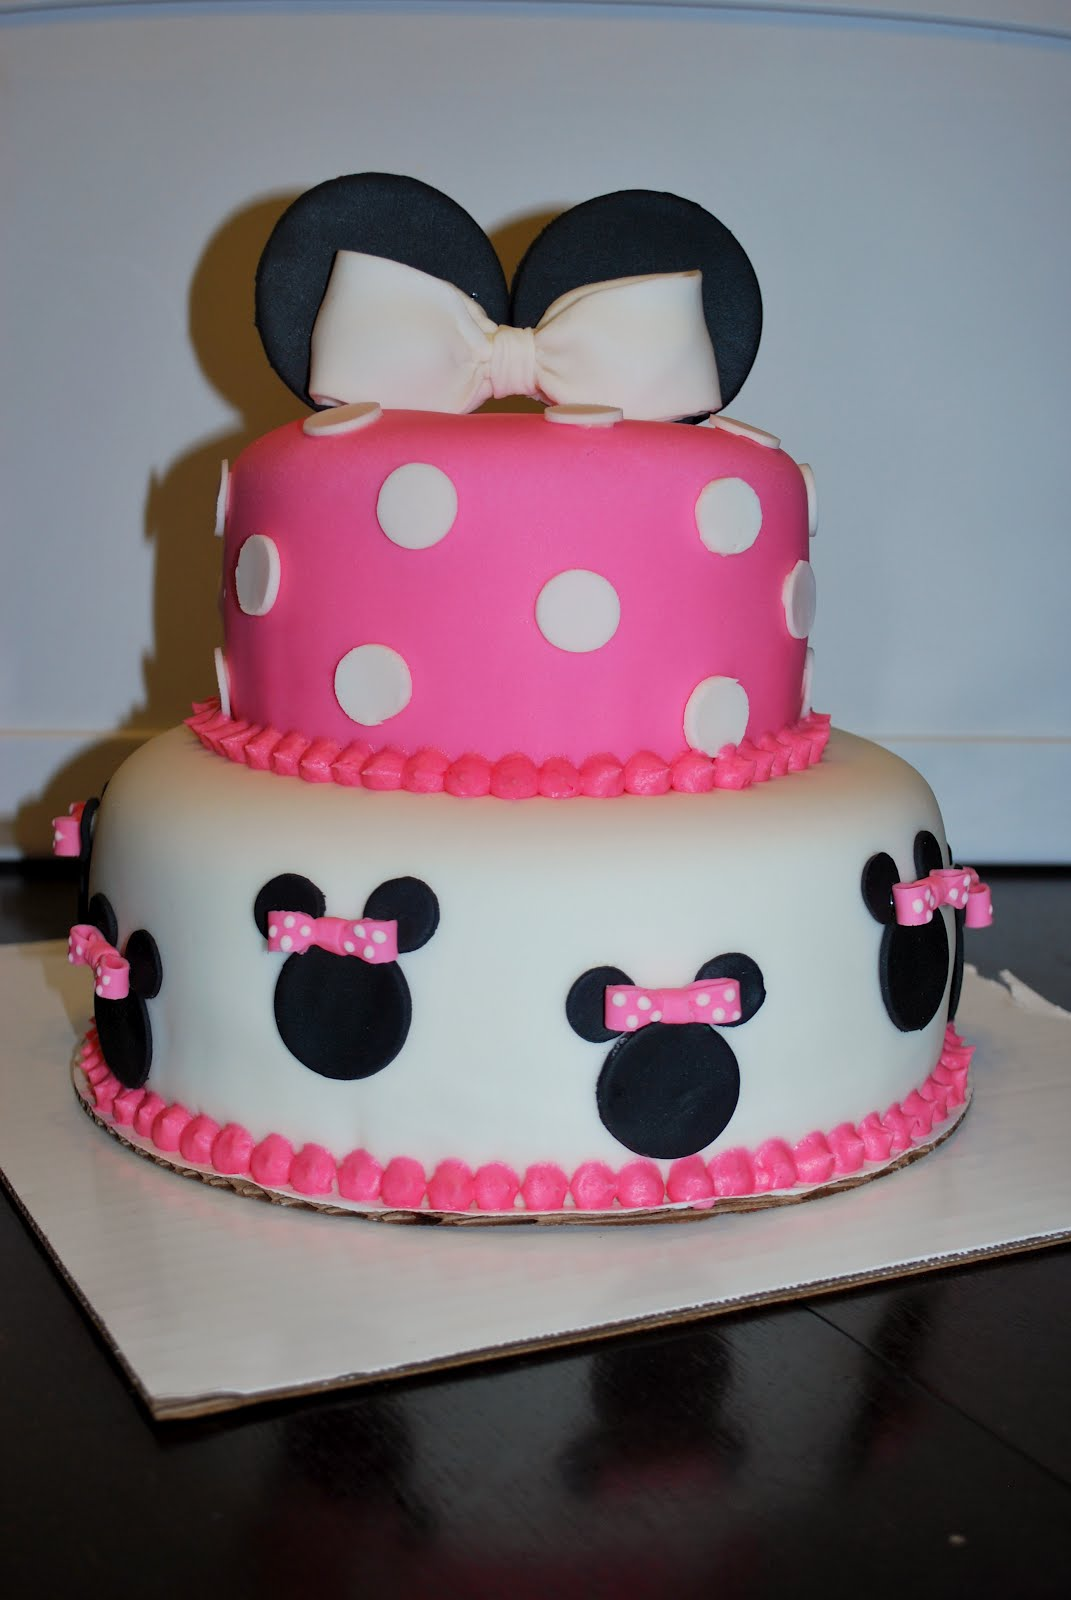 Cake Design For 2 Year Old Baby Girl : Abby Cakes: Birthday Cakes for two very special little 2 ...